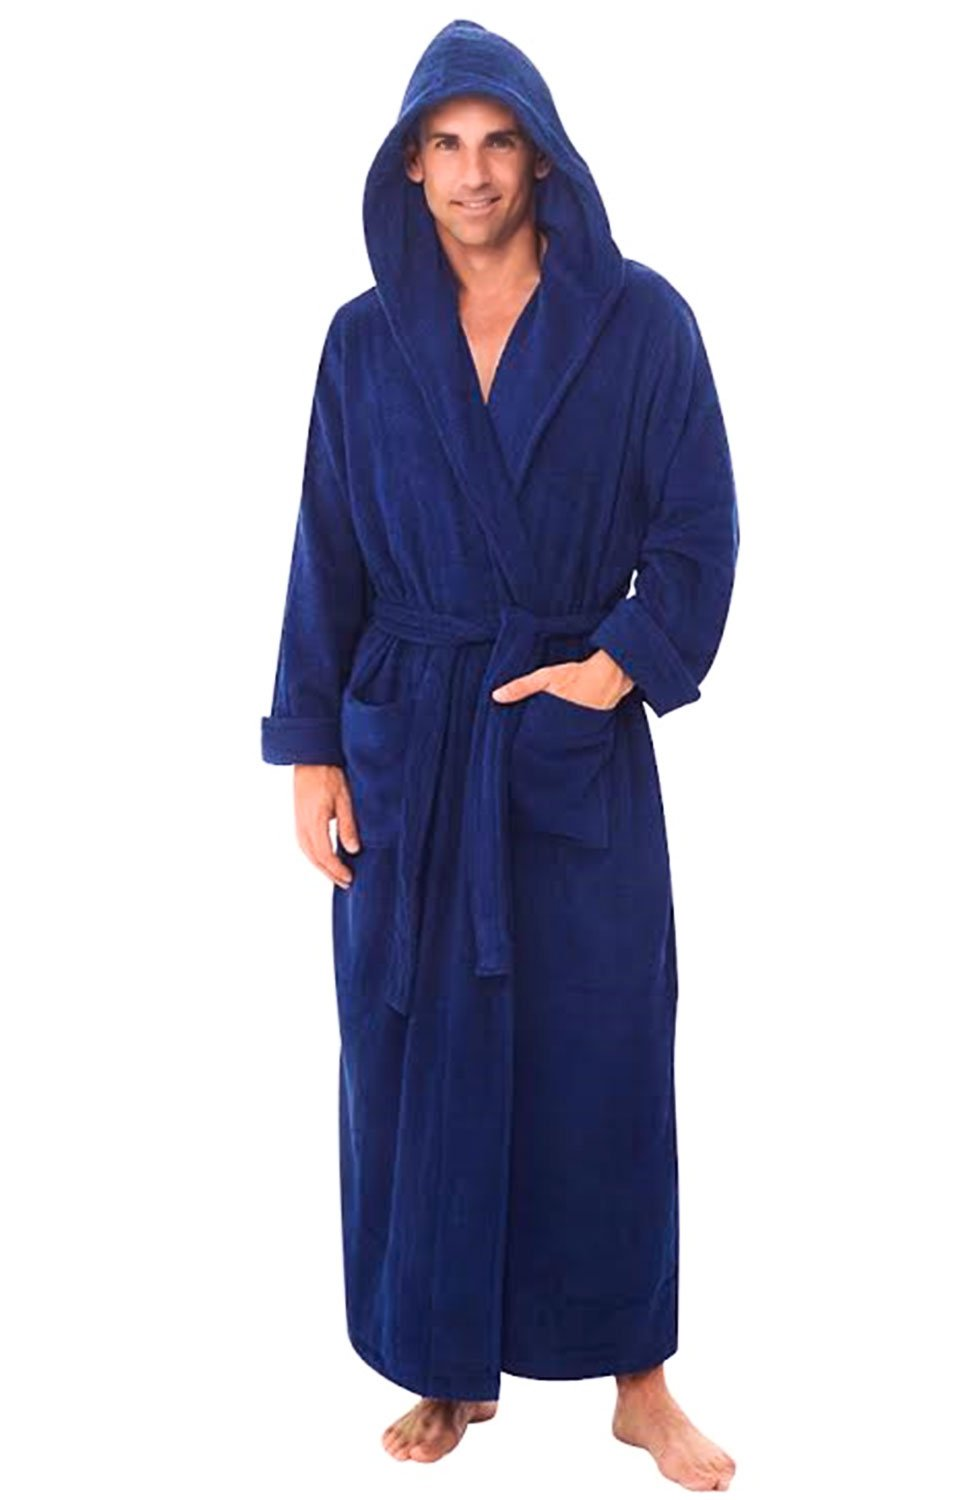 Alexander Del Rossa Mens Turkish Terry Cloth Robe, Long Cotton Hooded Bathrobe, Large XL Navy Blue (A0127NBLXL)